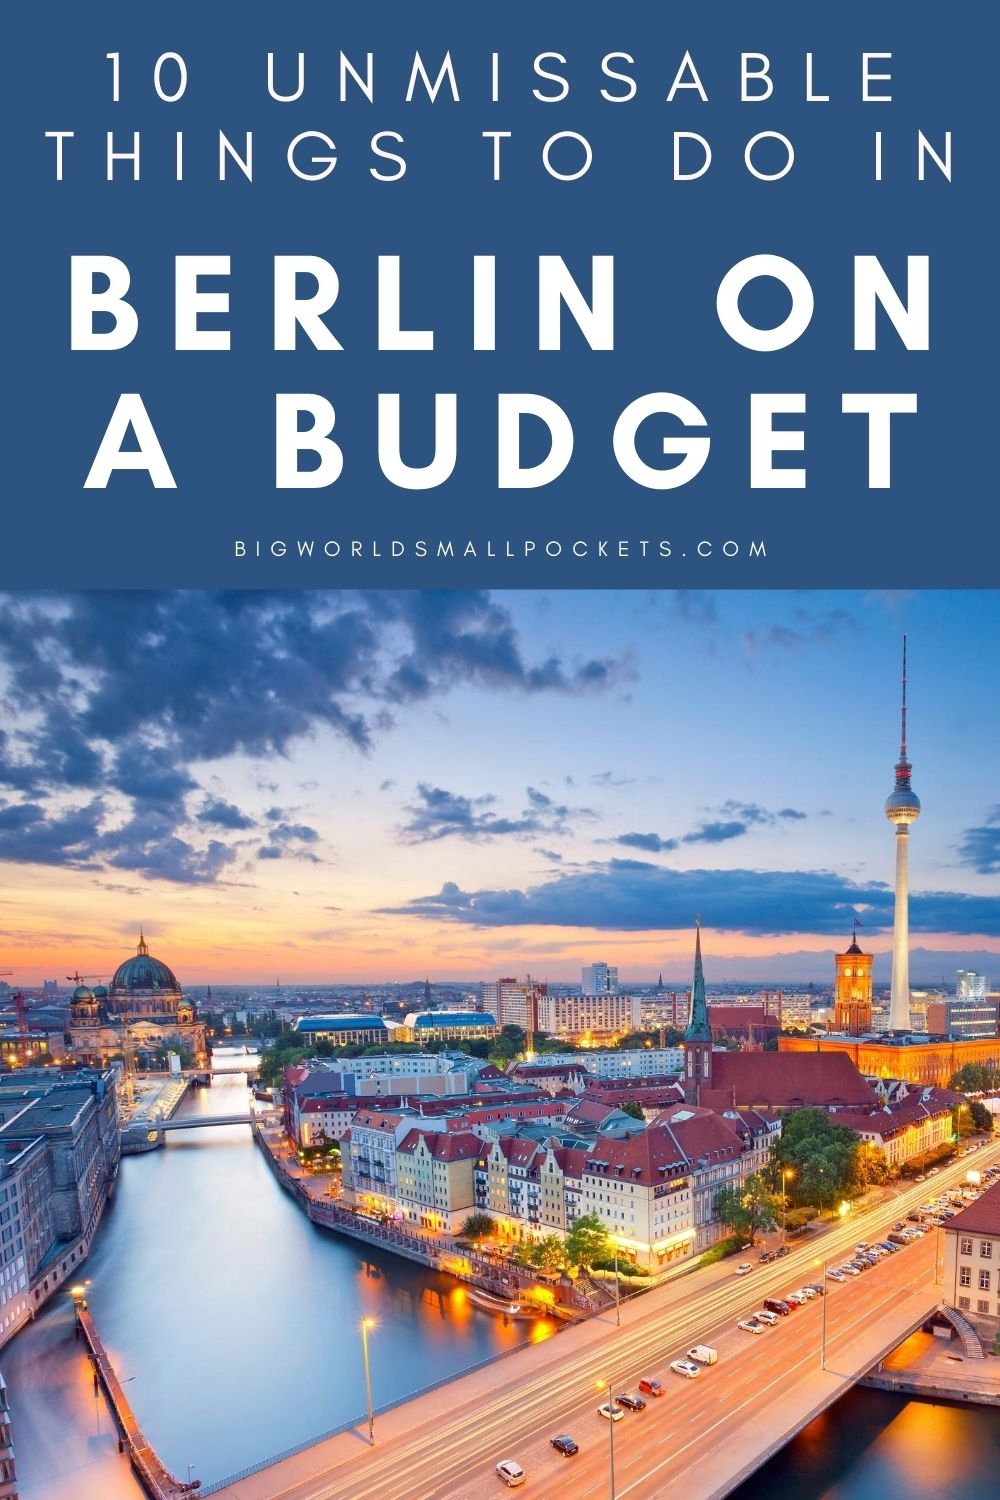 10 Unmissable Things To Do in Berlin